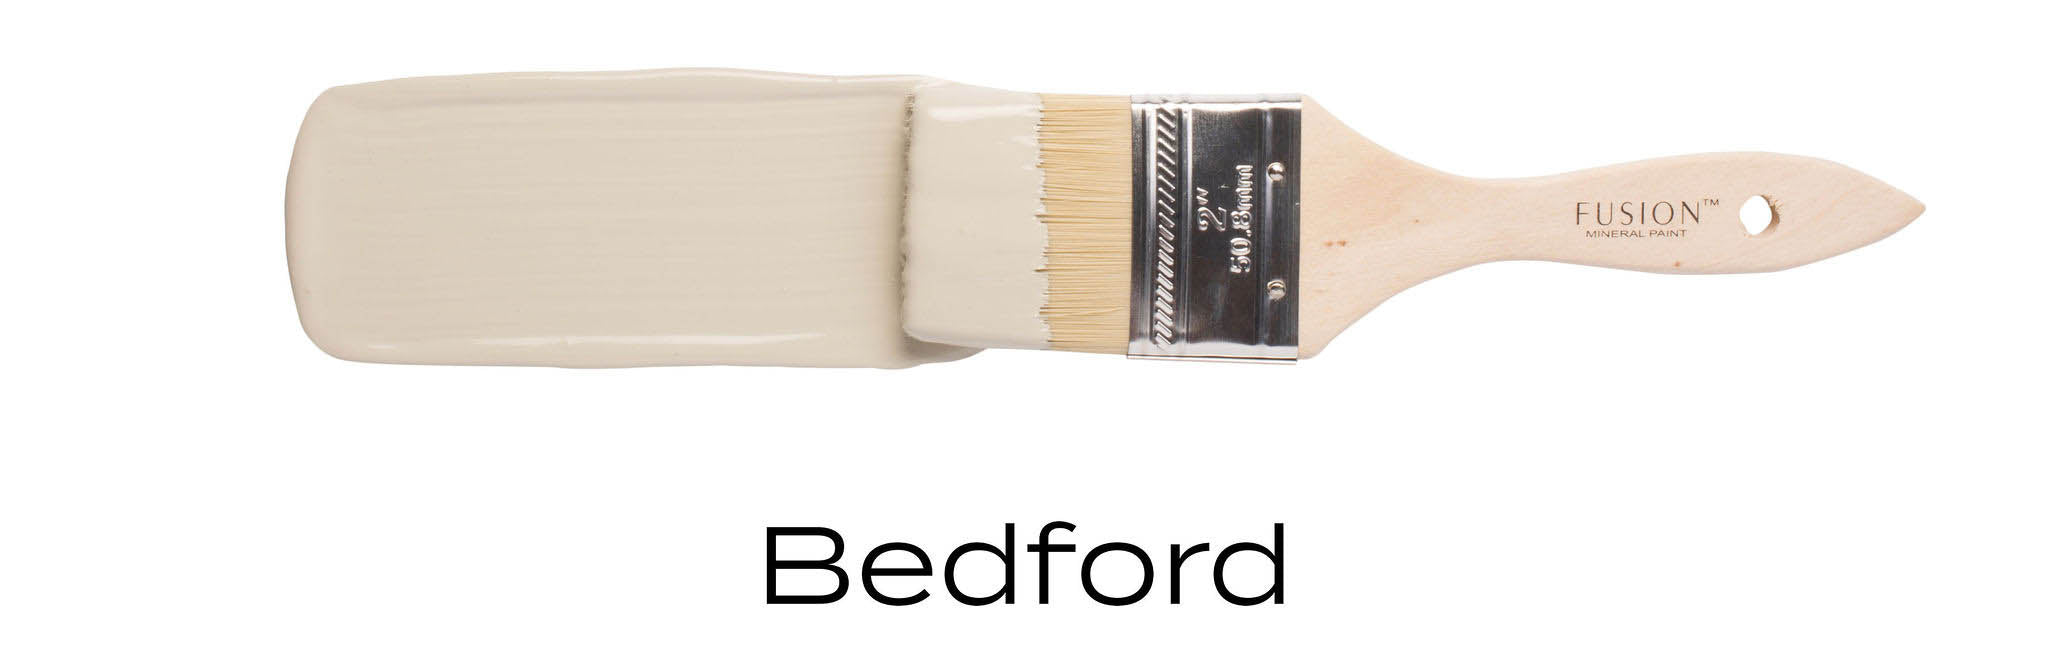 Bedford green colour fusion paint on paint brush stroke